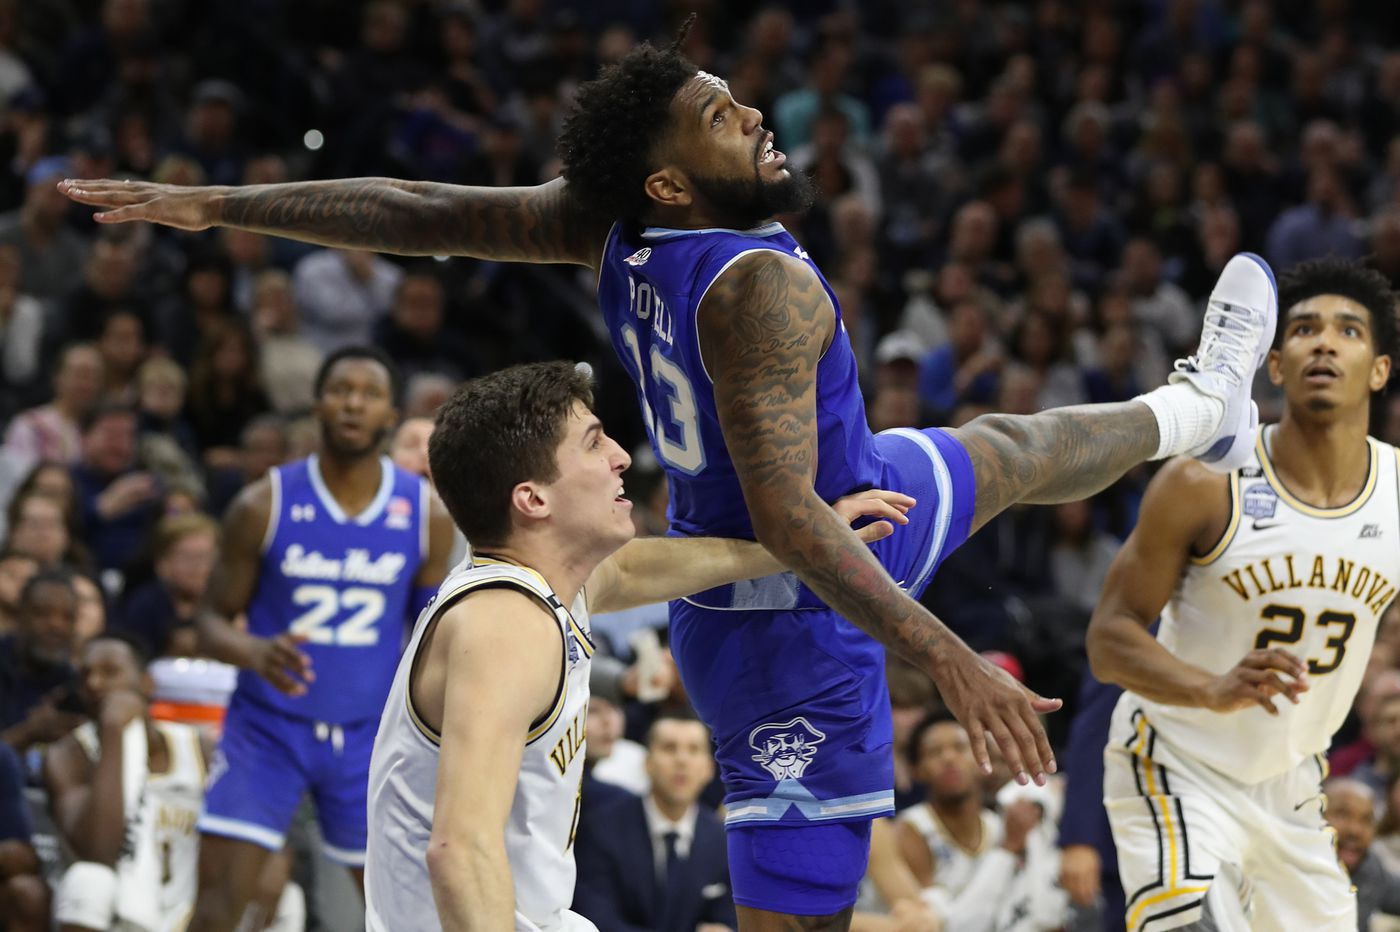 Observations from Villanova's loss to Seton Hall | Mike Jensen